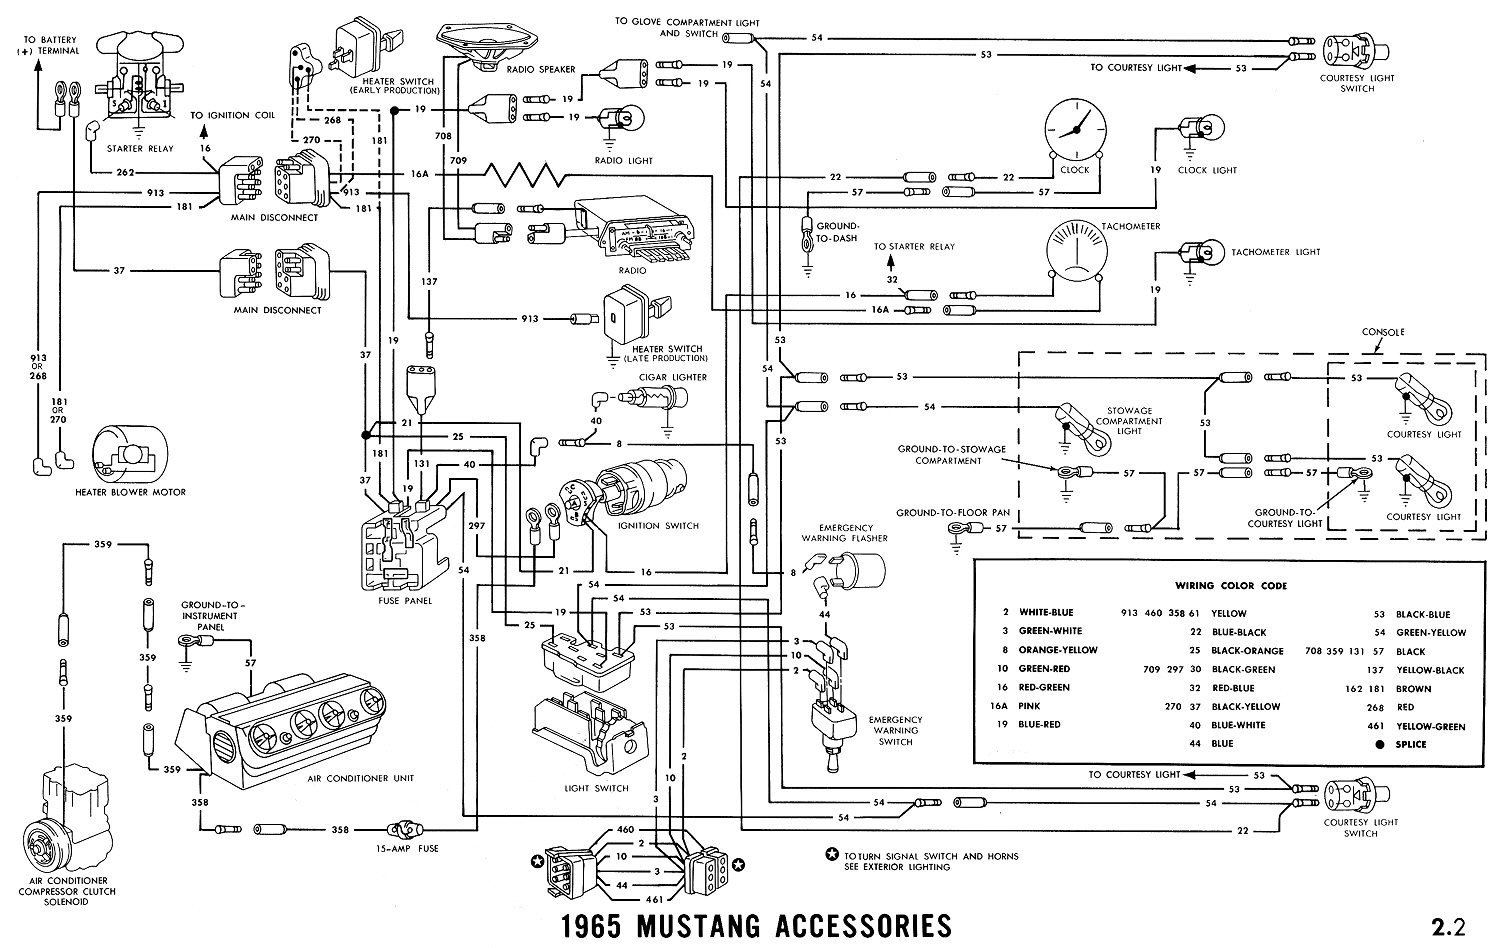 1965i mustang wiring harness diagram 66 mustang wiring diagram \u2022 free 2006 mustang wiring diagram at readyjetset.co